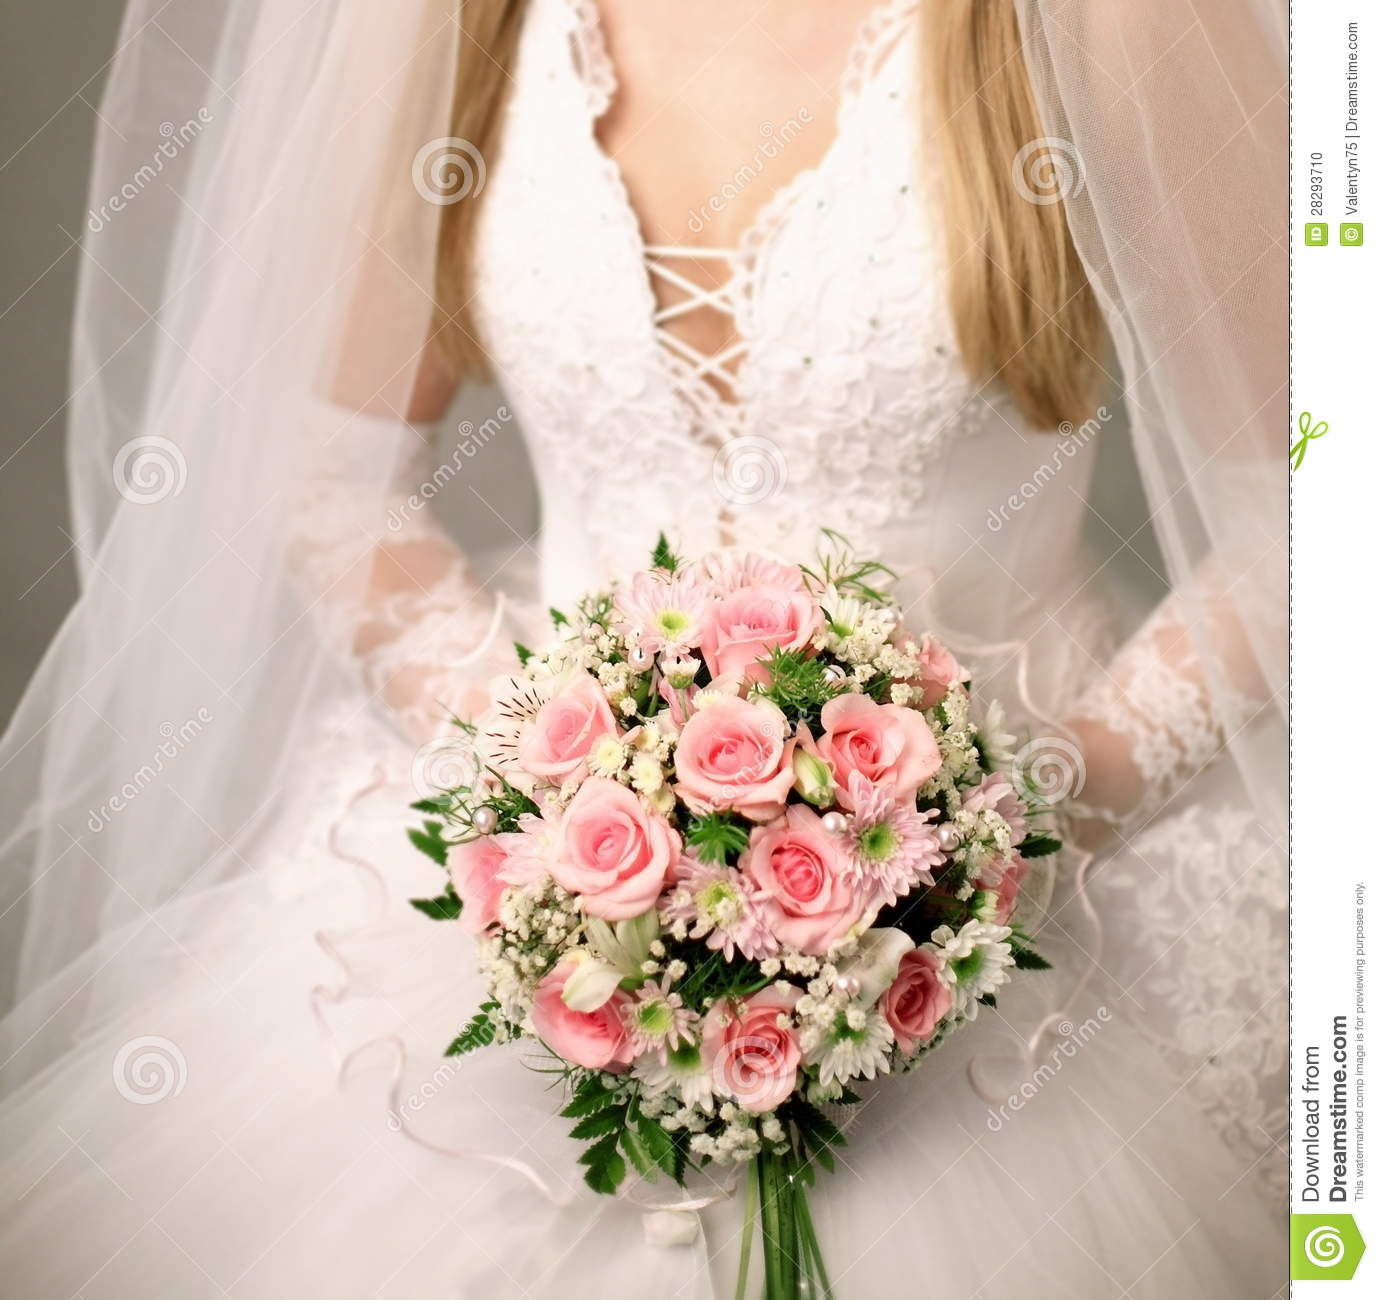 Bouquet Of Roses In Brides Hands Stock Photo  Image